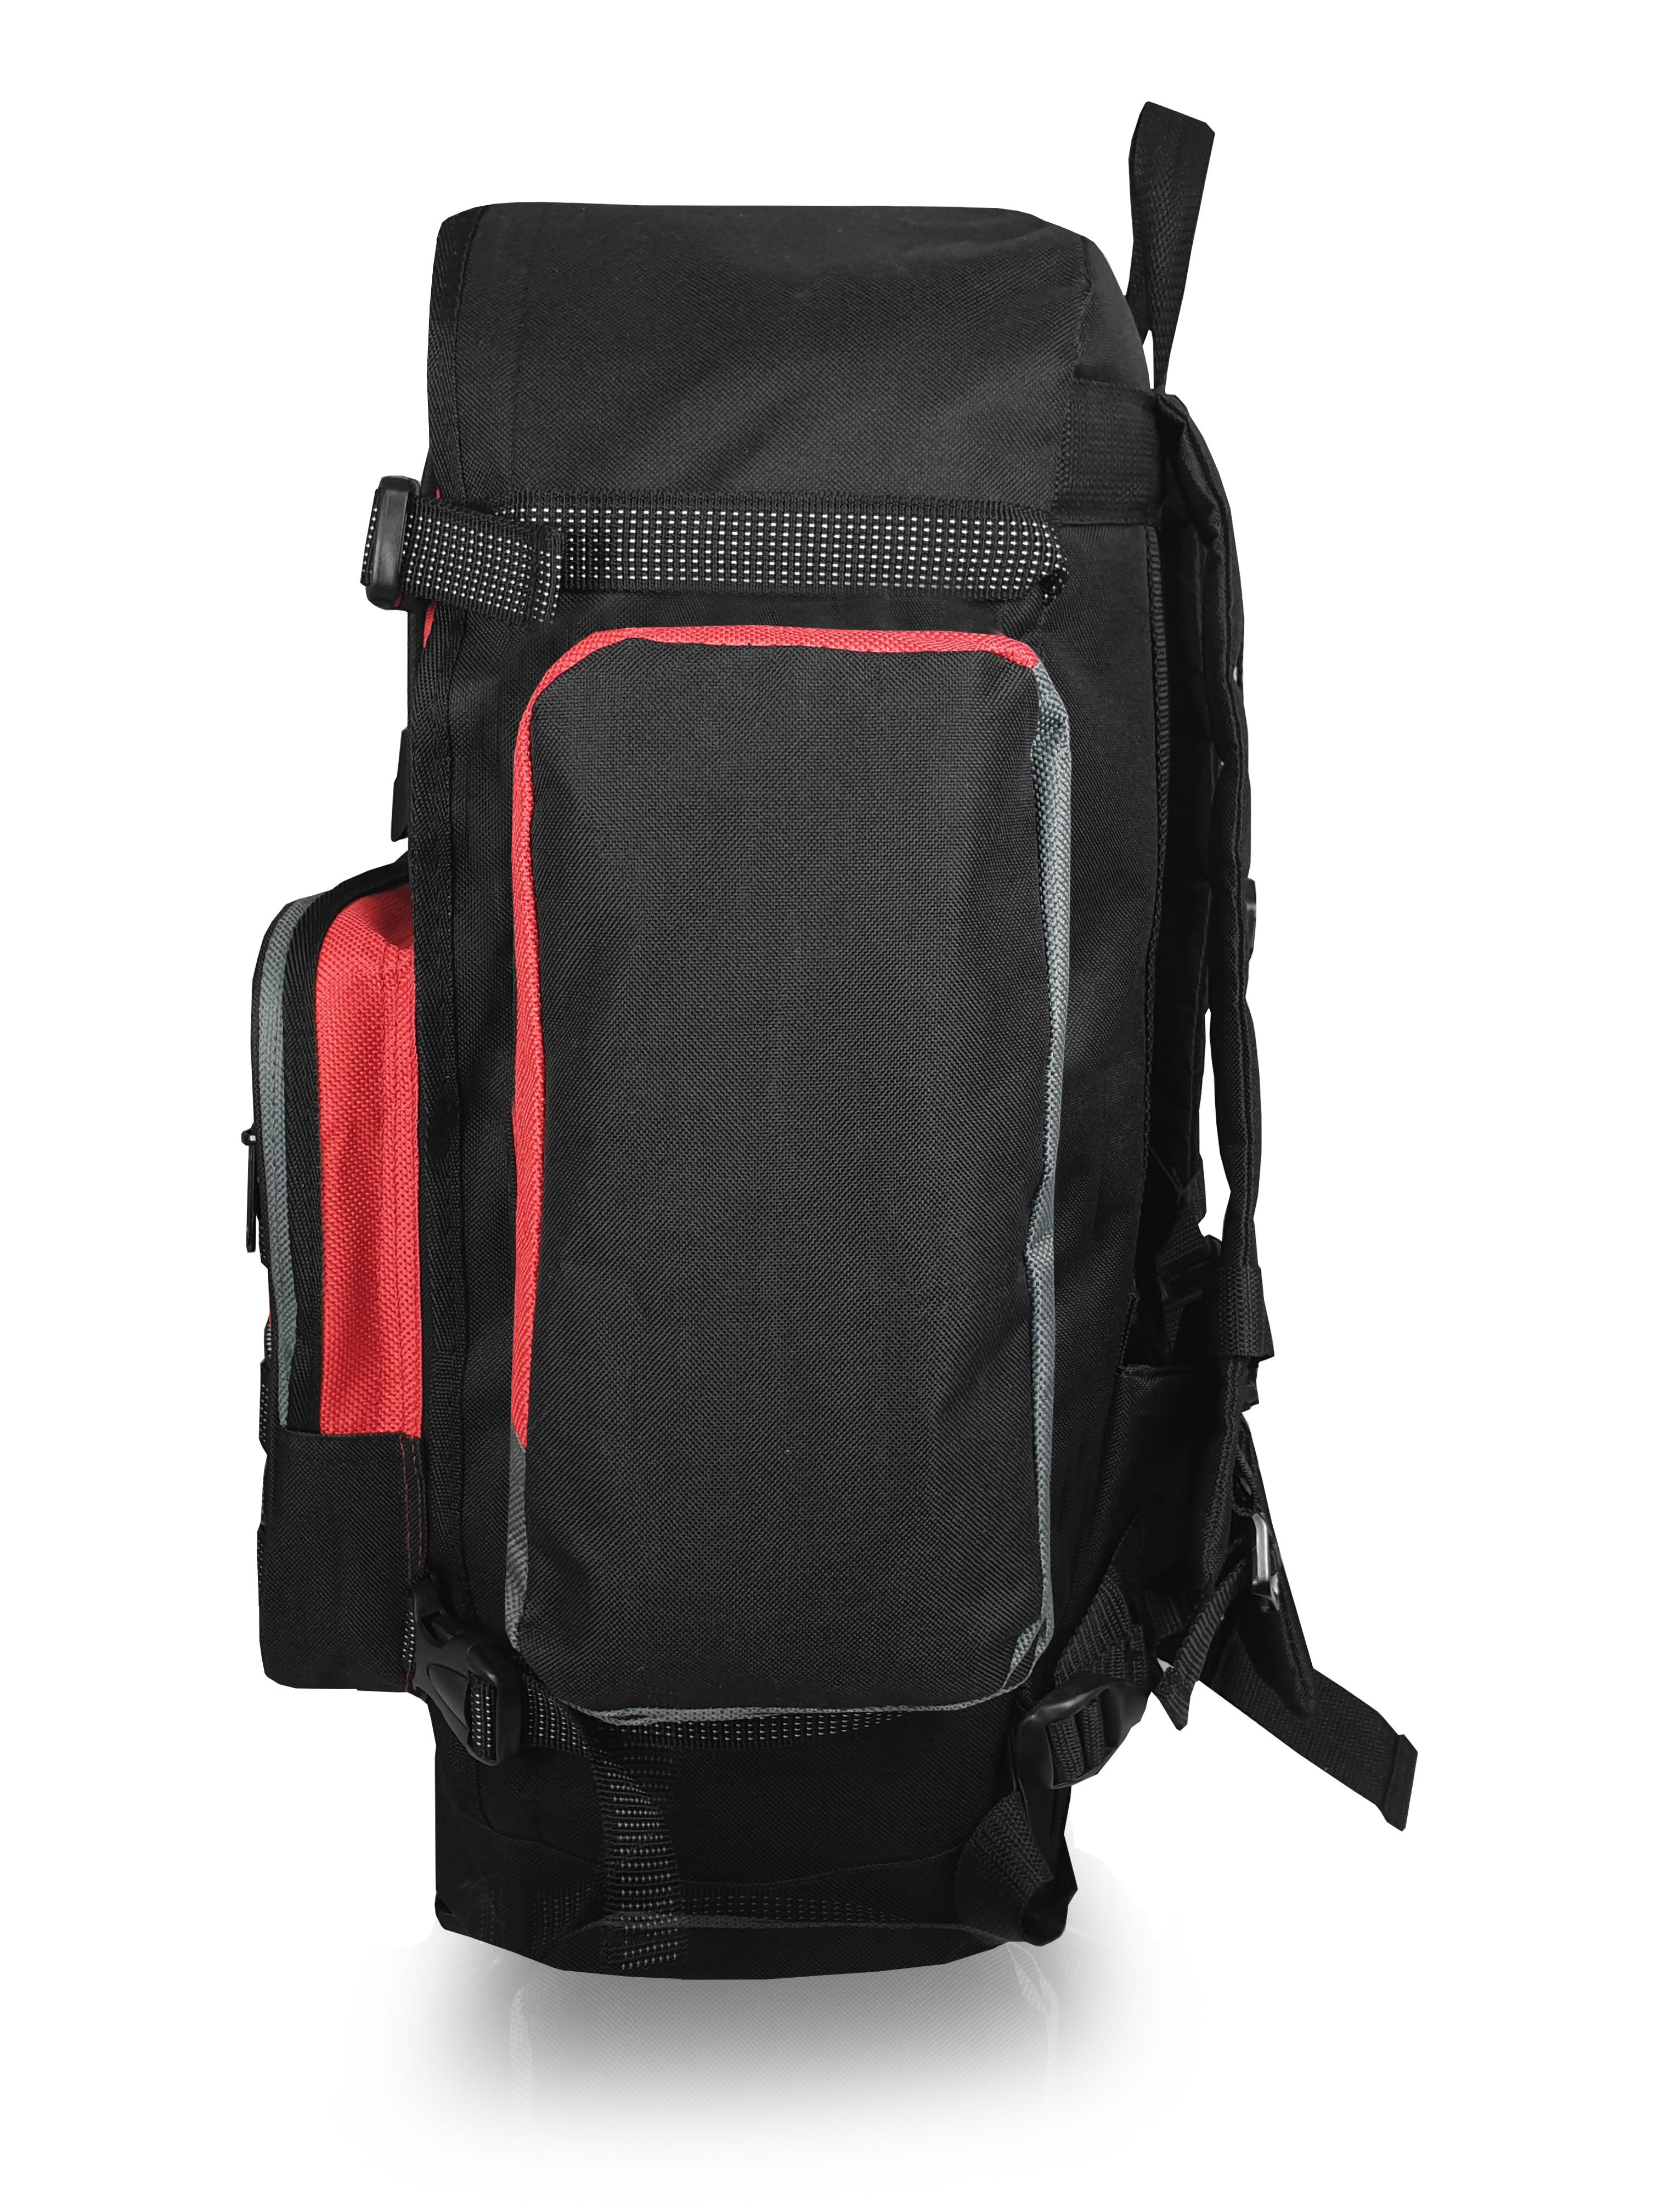 Large Hiking, Trekking, Travel and Camping Backpack, 55 Litre Capacity